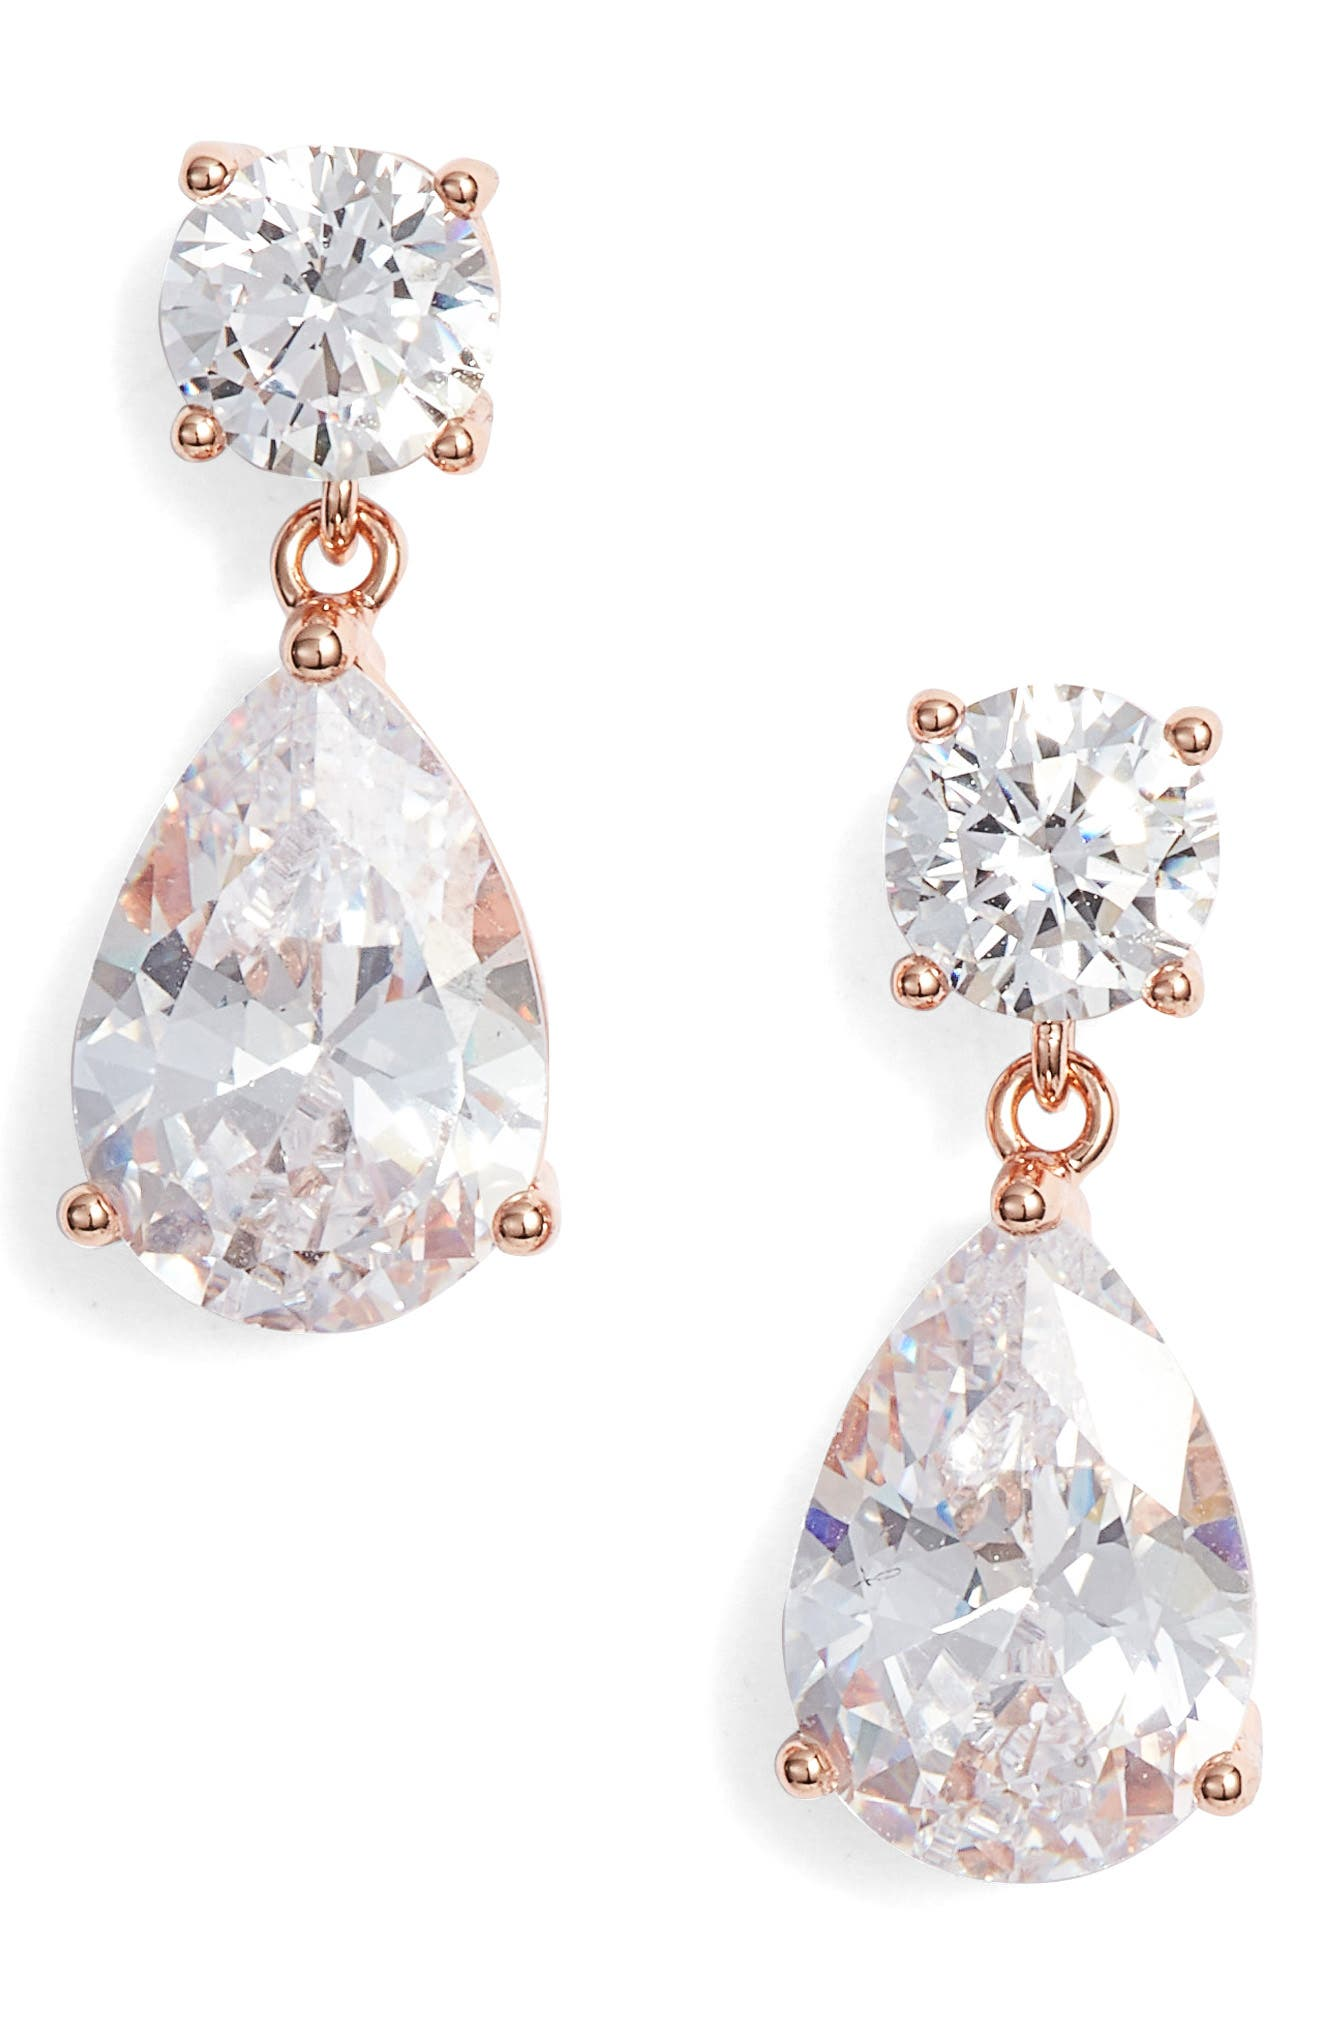 NORDSTROM, Cubic Zirconia Teardrop Earrings, Main thumbnail 1, color, CLEAR- ROSE GOLD